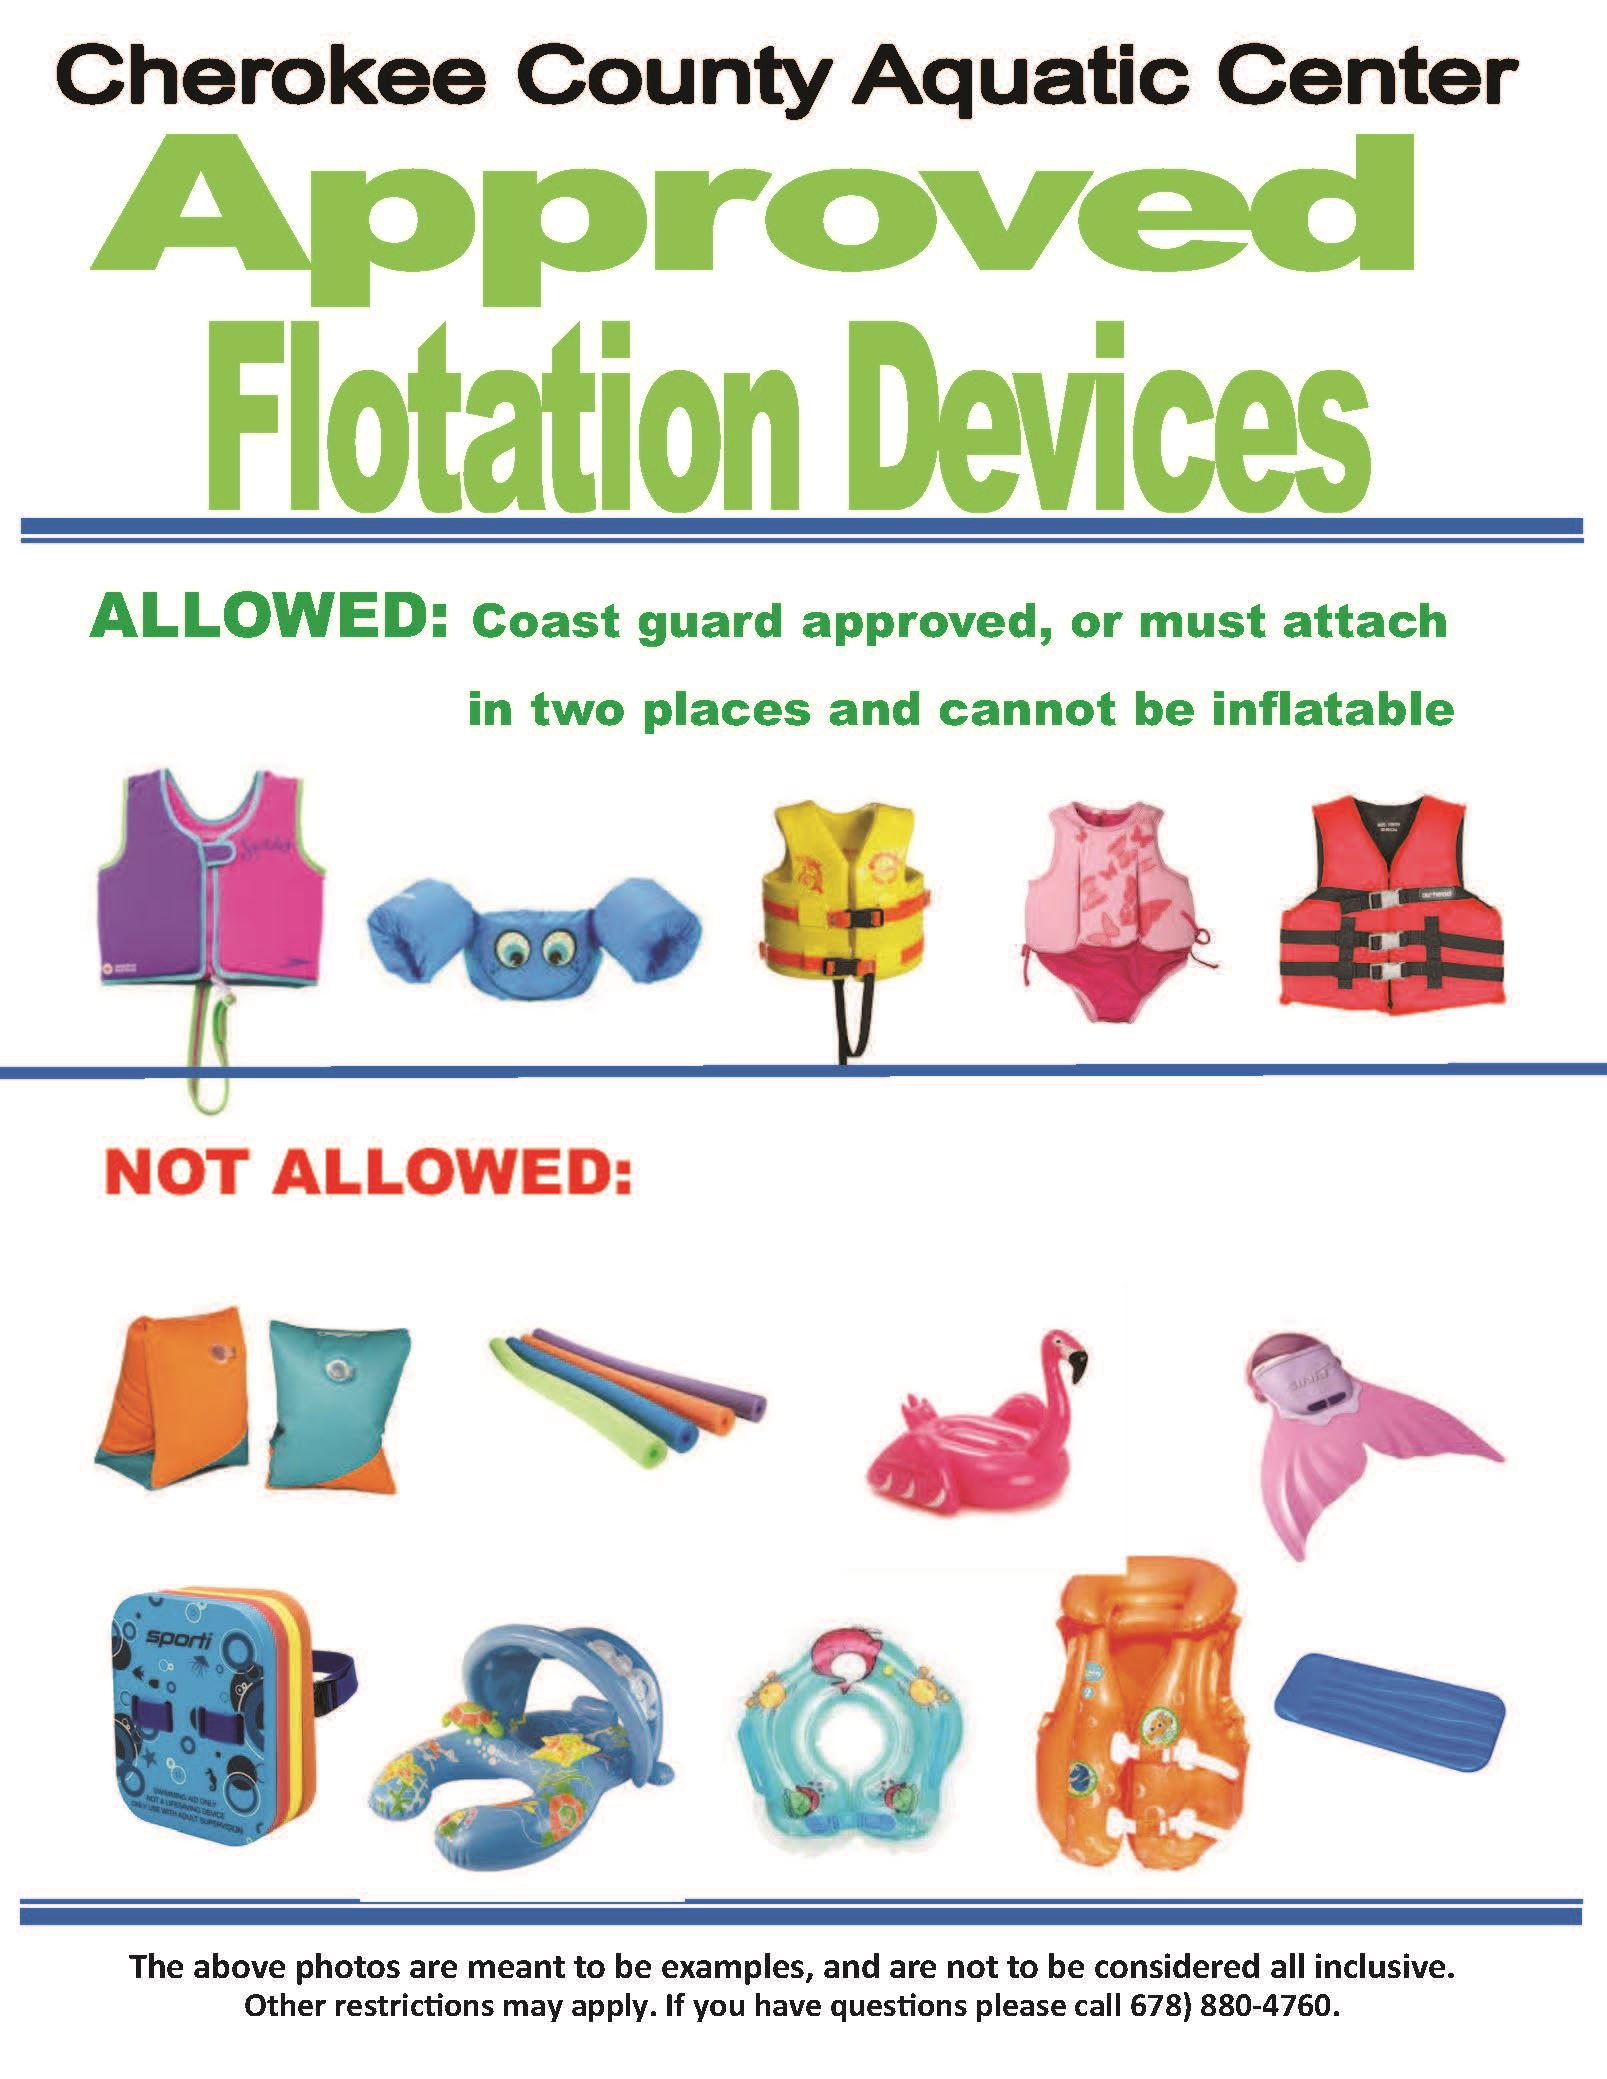 Floatation Devices